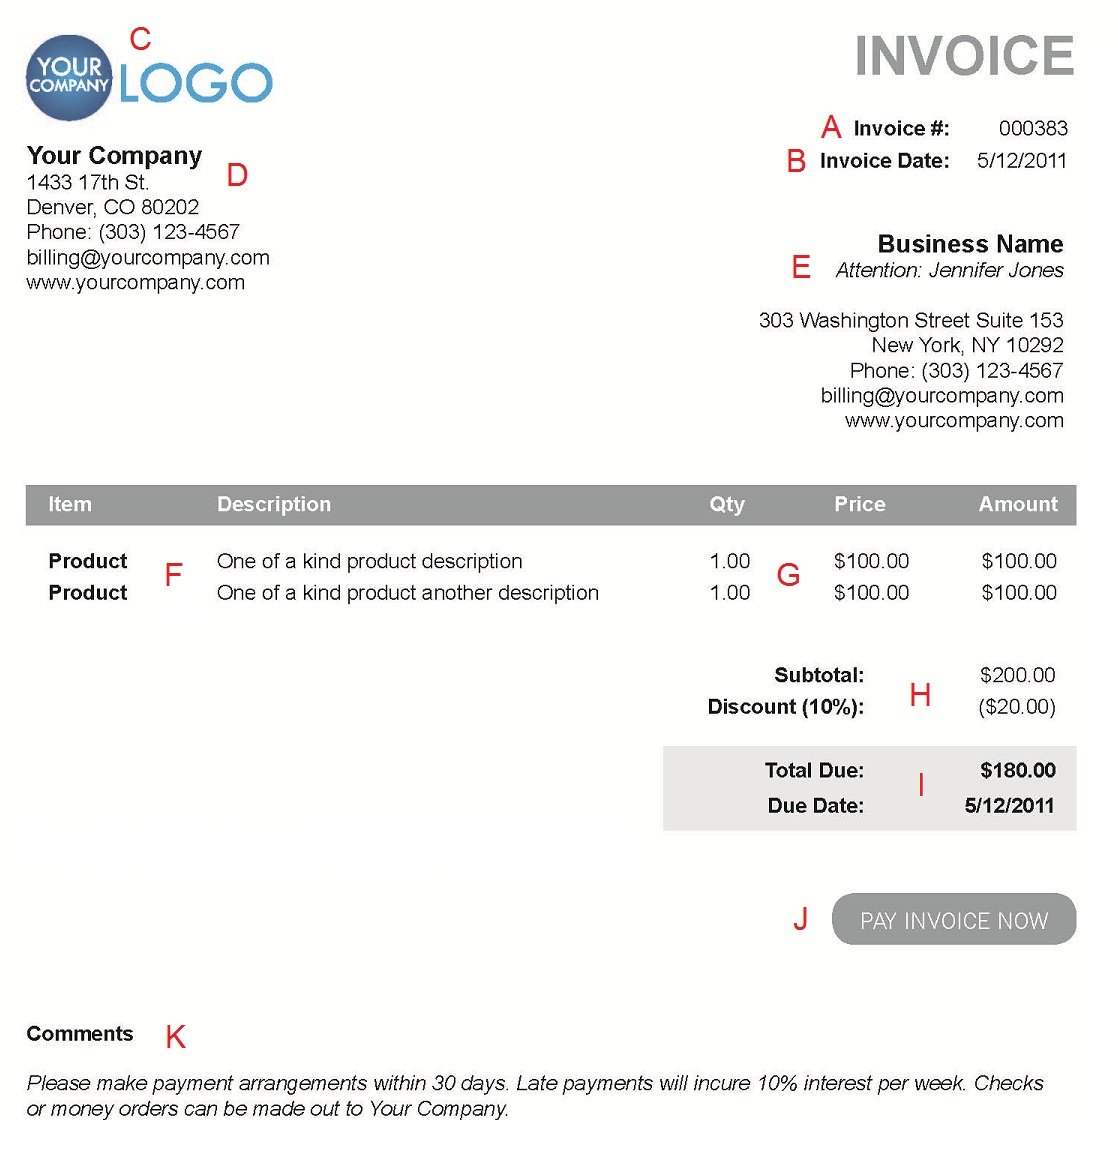 Gpwaus  Sweet The  Different Sections Of An Electronic Payment Invoice With Entrancing A  With Astonishing Rent And Security Deposit Receipt Also Download Receipt Template In Addition Home Depot Duplicate Receipt And Fake Sales Receipt As Well As Tax Receipt For Donation Template Additionally Neat Receipts Reviews From Paysimplecom With Gpwaus  Entrancing The  Different Sections Of An Electronic Payment Invoice With Astonishing A  And Sweet Rent And Security Deposit Receipt Also Download Receipt Template In Addition Home Depot Duplicate Receipt From Paysimplecom